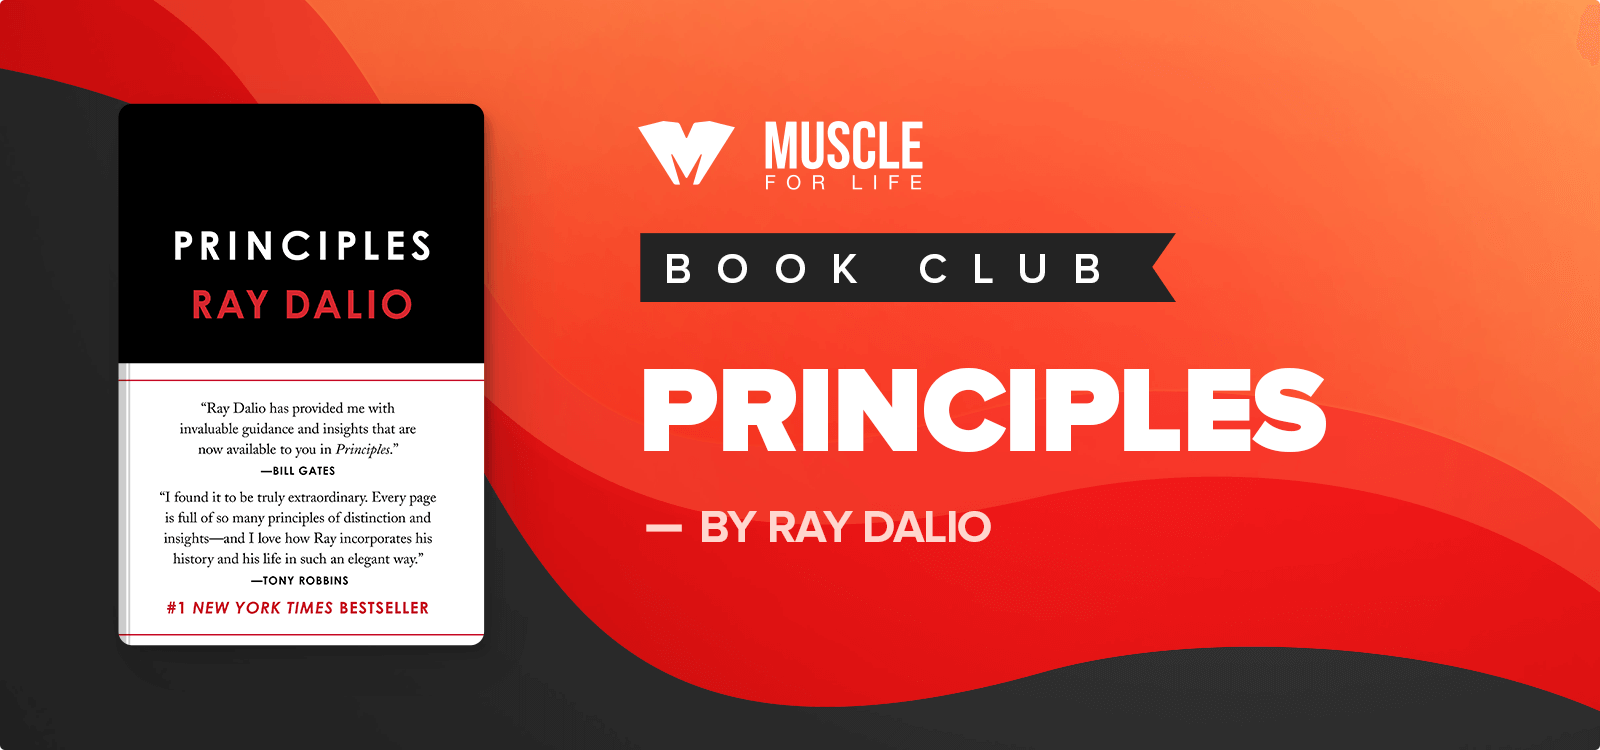 Book Club: My Top 5 Takeaways from Principles by Ray Dalio